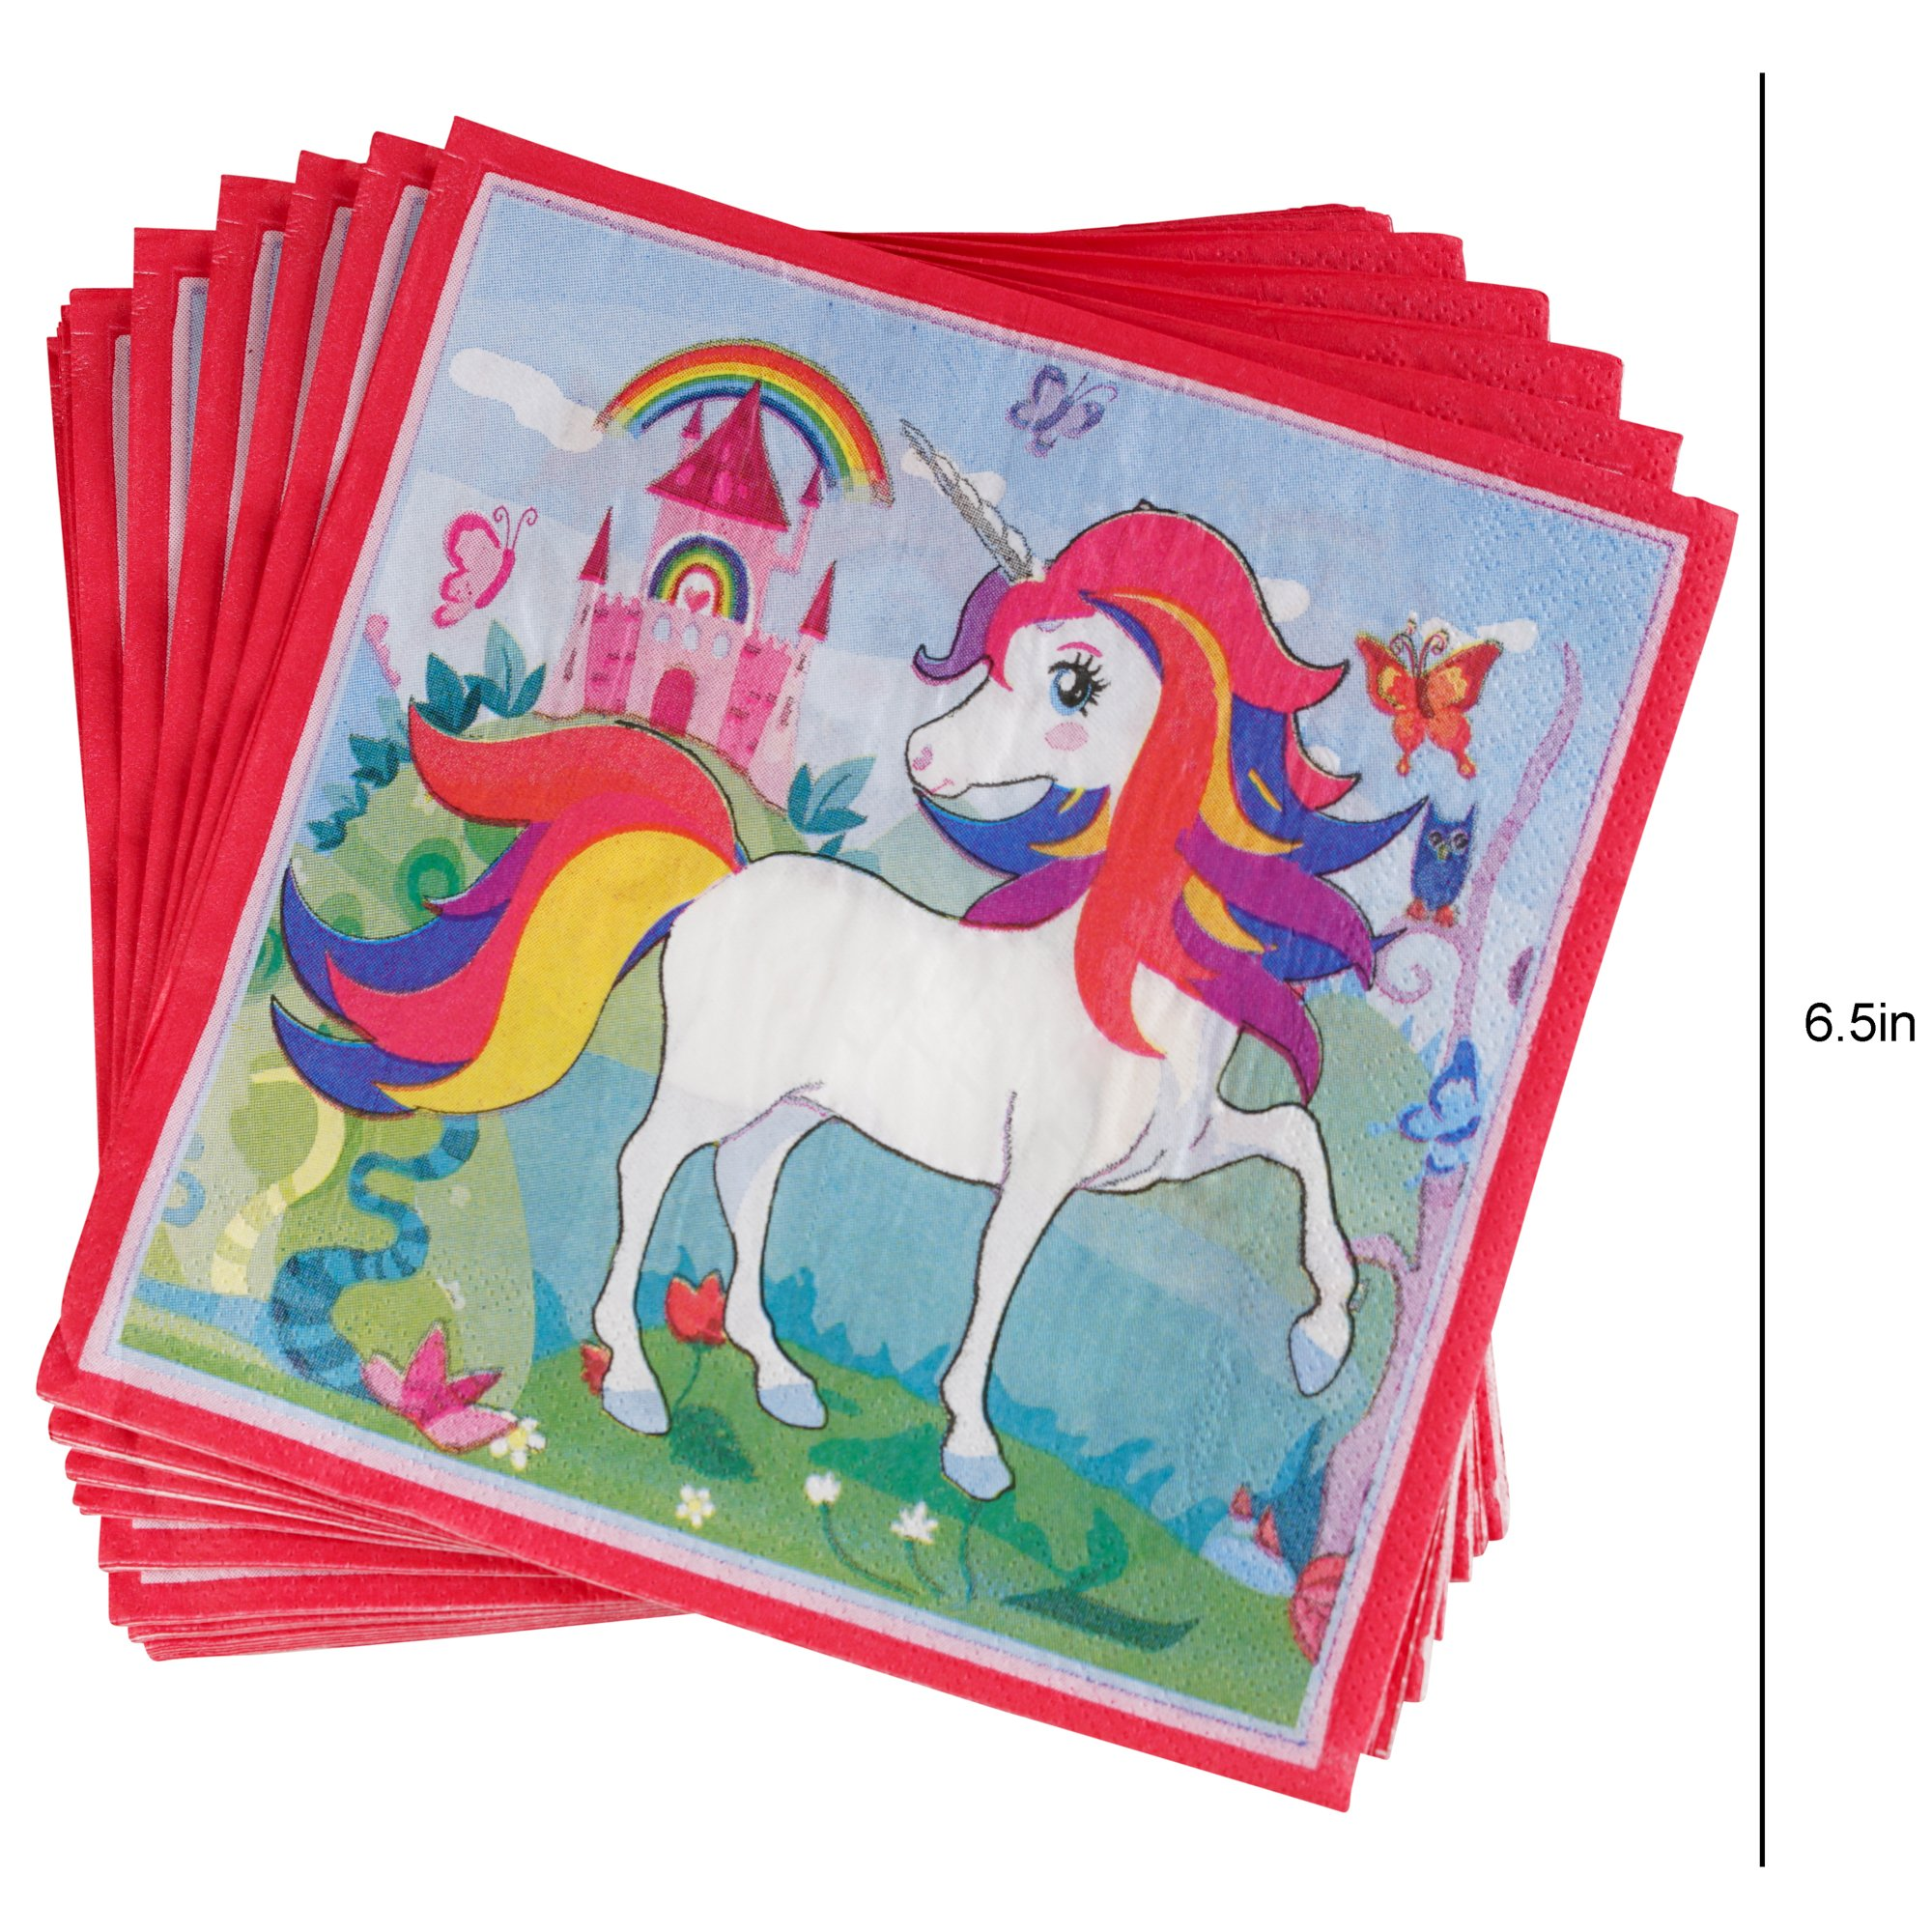 82 Piece Unicorn Party Supplies Set Including Banner, Plates, Cups, Napkins and Tablecloth, Serves 20 by Scale Rank (Image #7)